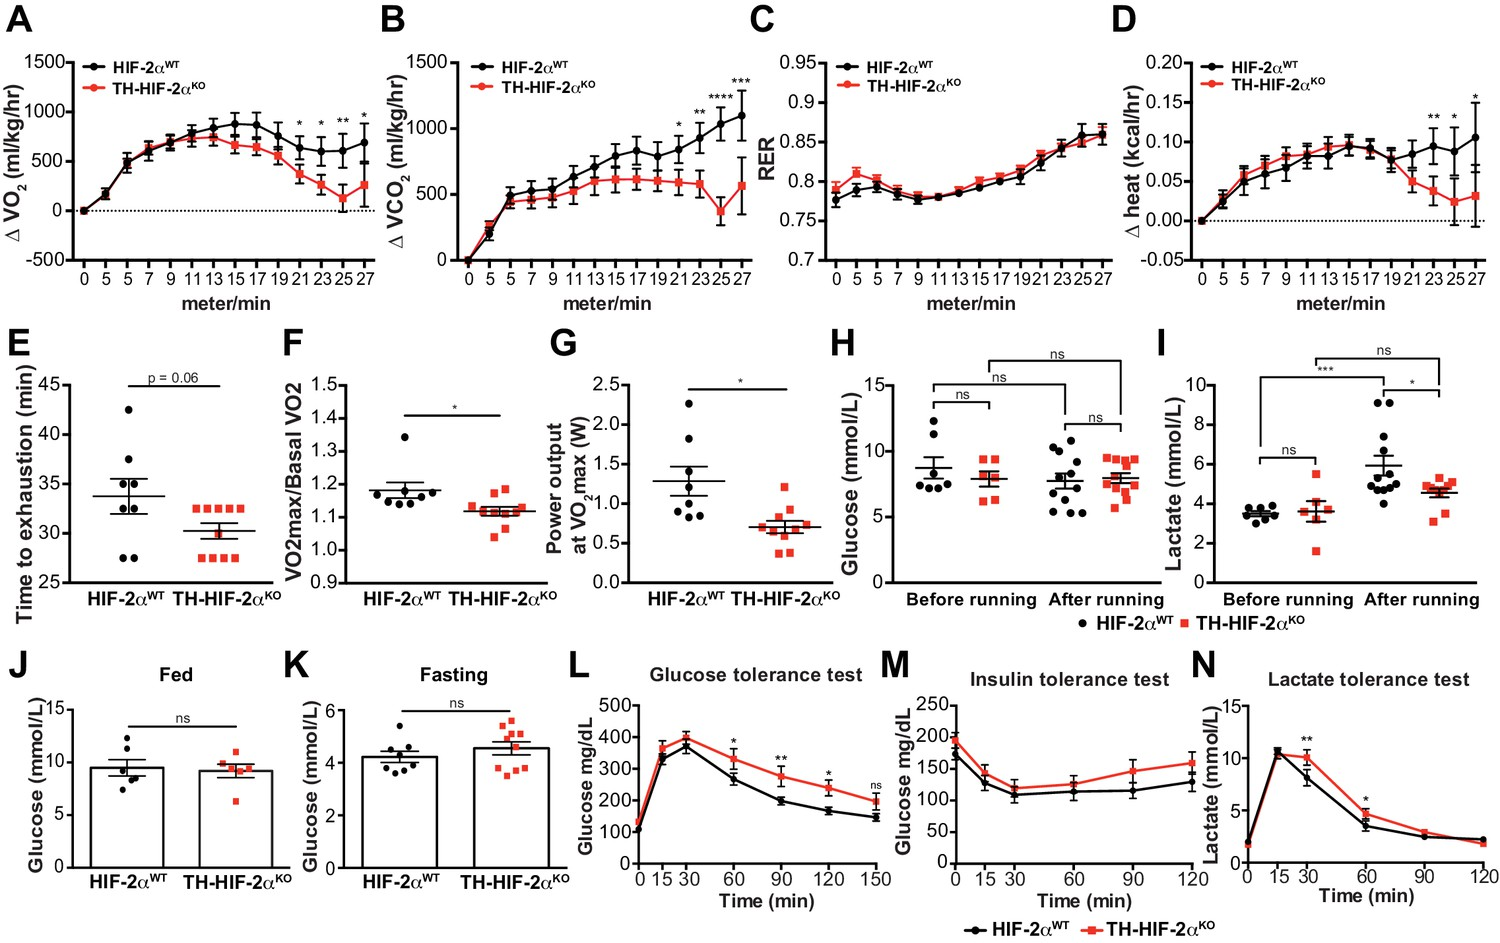 Hif 2 Is Essential For Carotid Body Development And Function Elife Computer Mouse Management On A Success Diagram Stock Image Exercise Performance Glucose In Mice Lacking Cbs